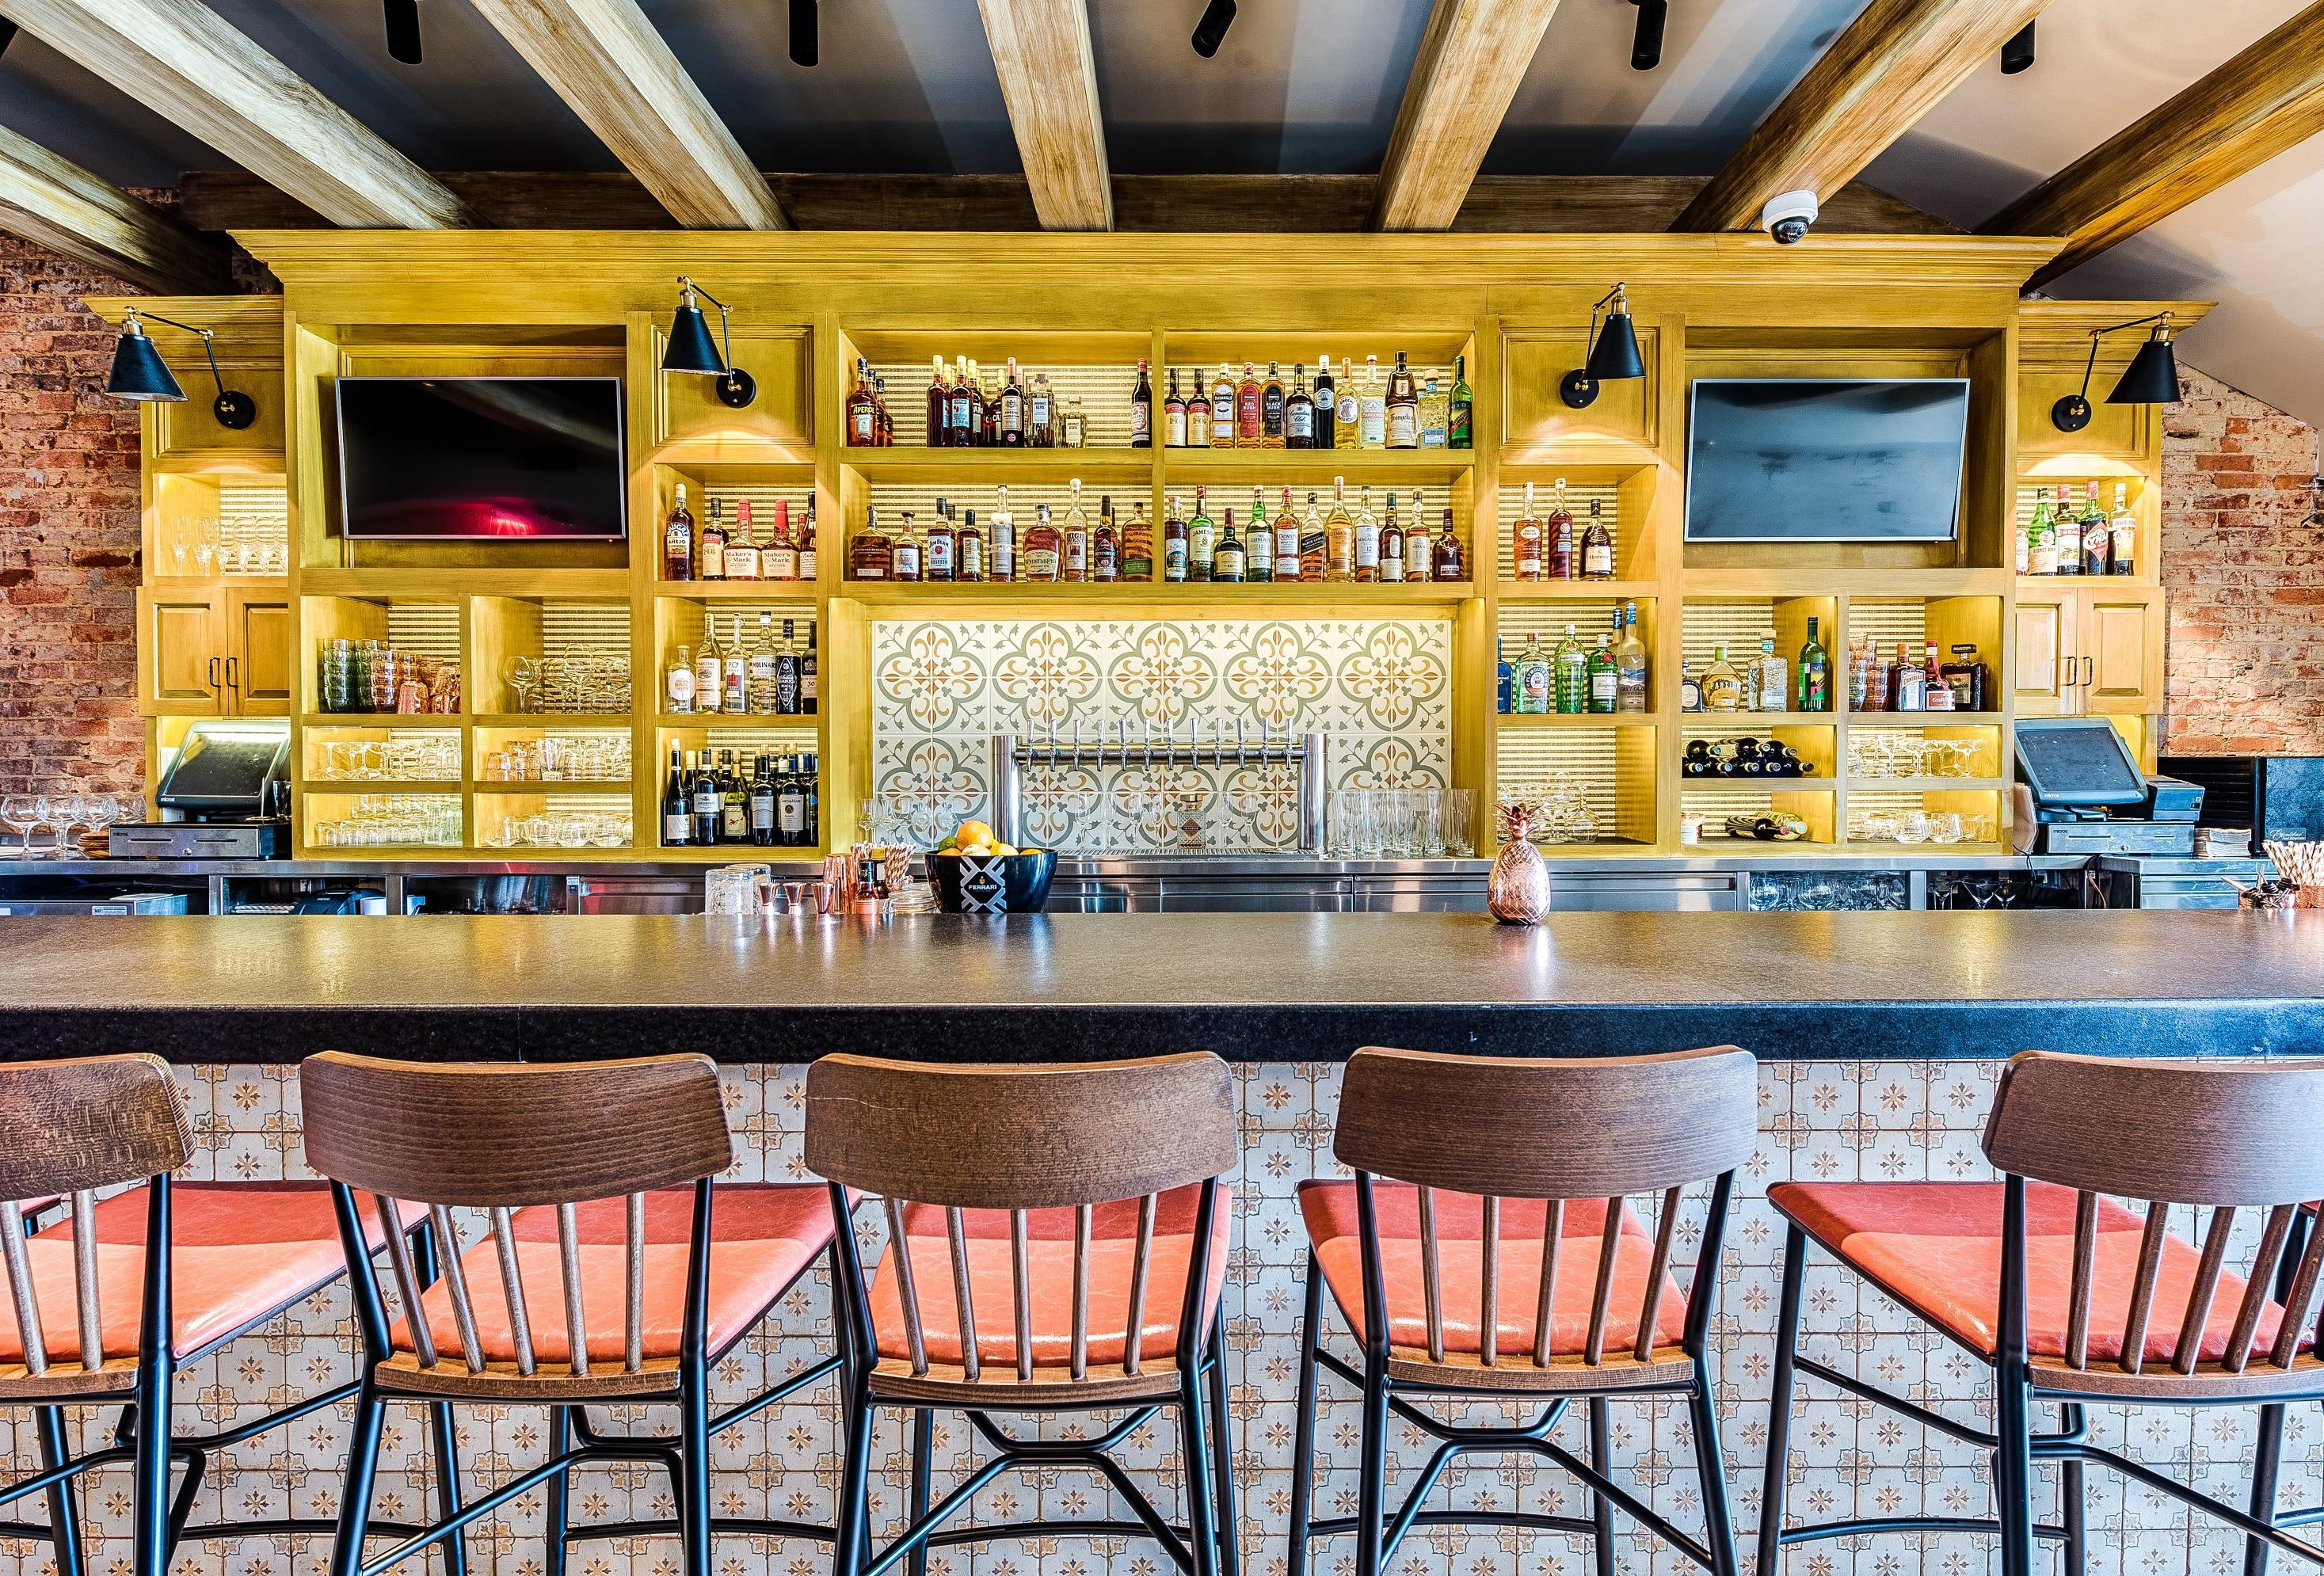 Cozy up to the bar, where you can observe prosciutto being gracefully sliced or simply watch television. (Image: Rey Lopez)